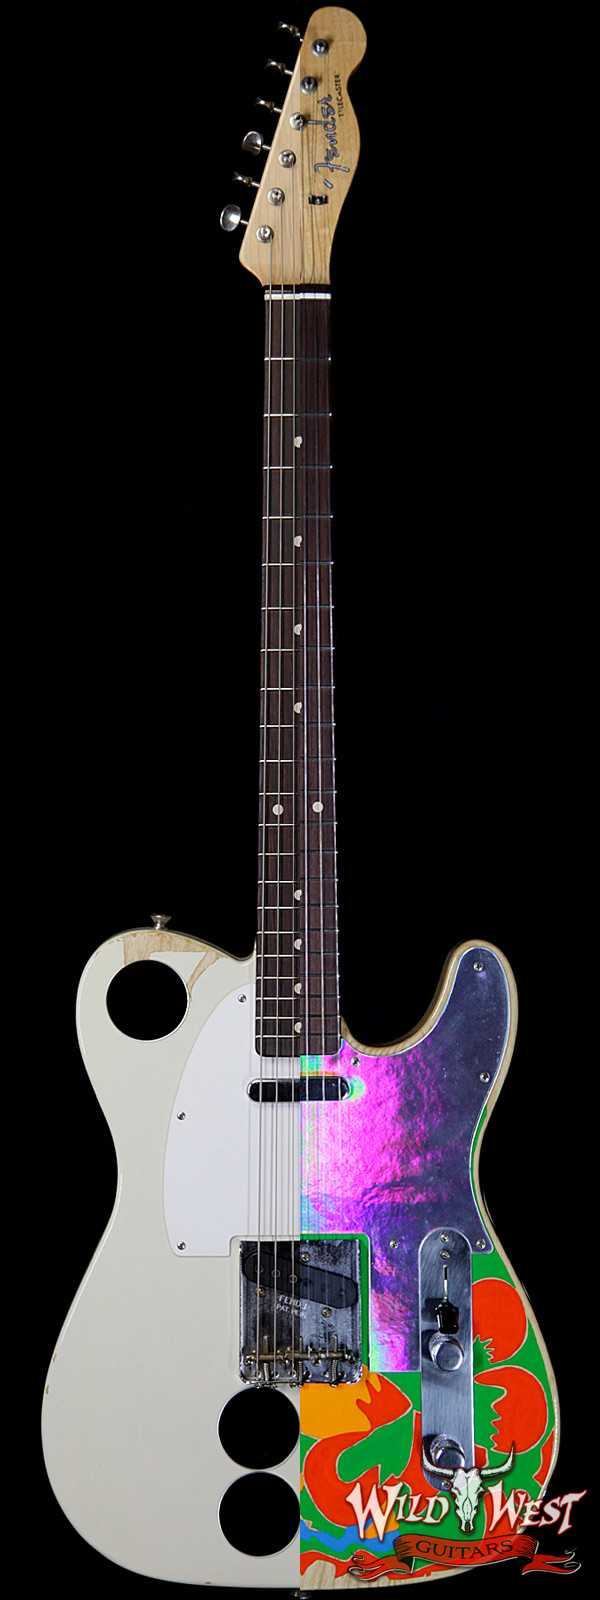 Fender Custom Shop Limited Edition Jimmy Page Telecaster Set Masterbuilt by Paul Waller